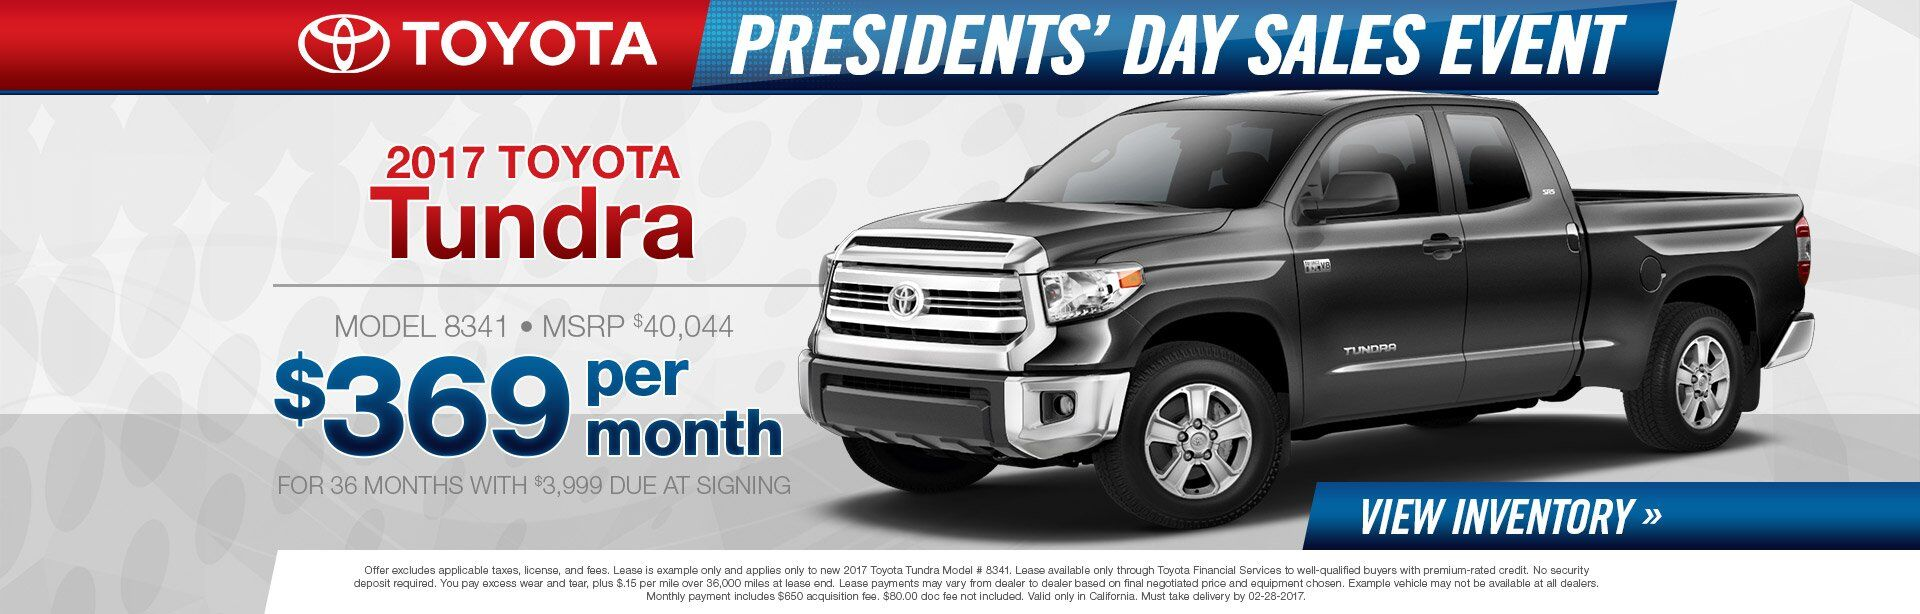 Tundra Presidents Day Sale